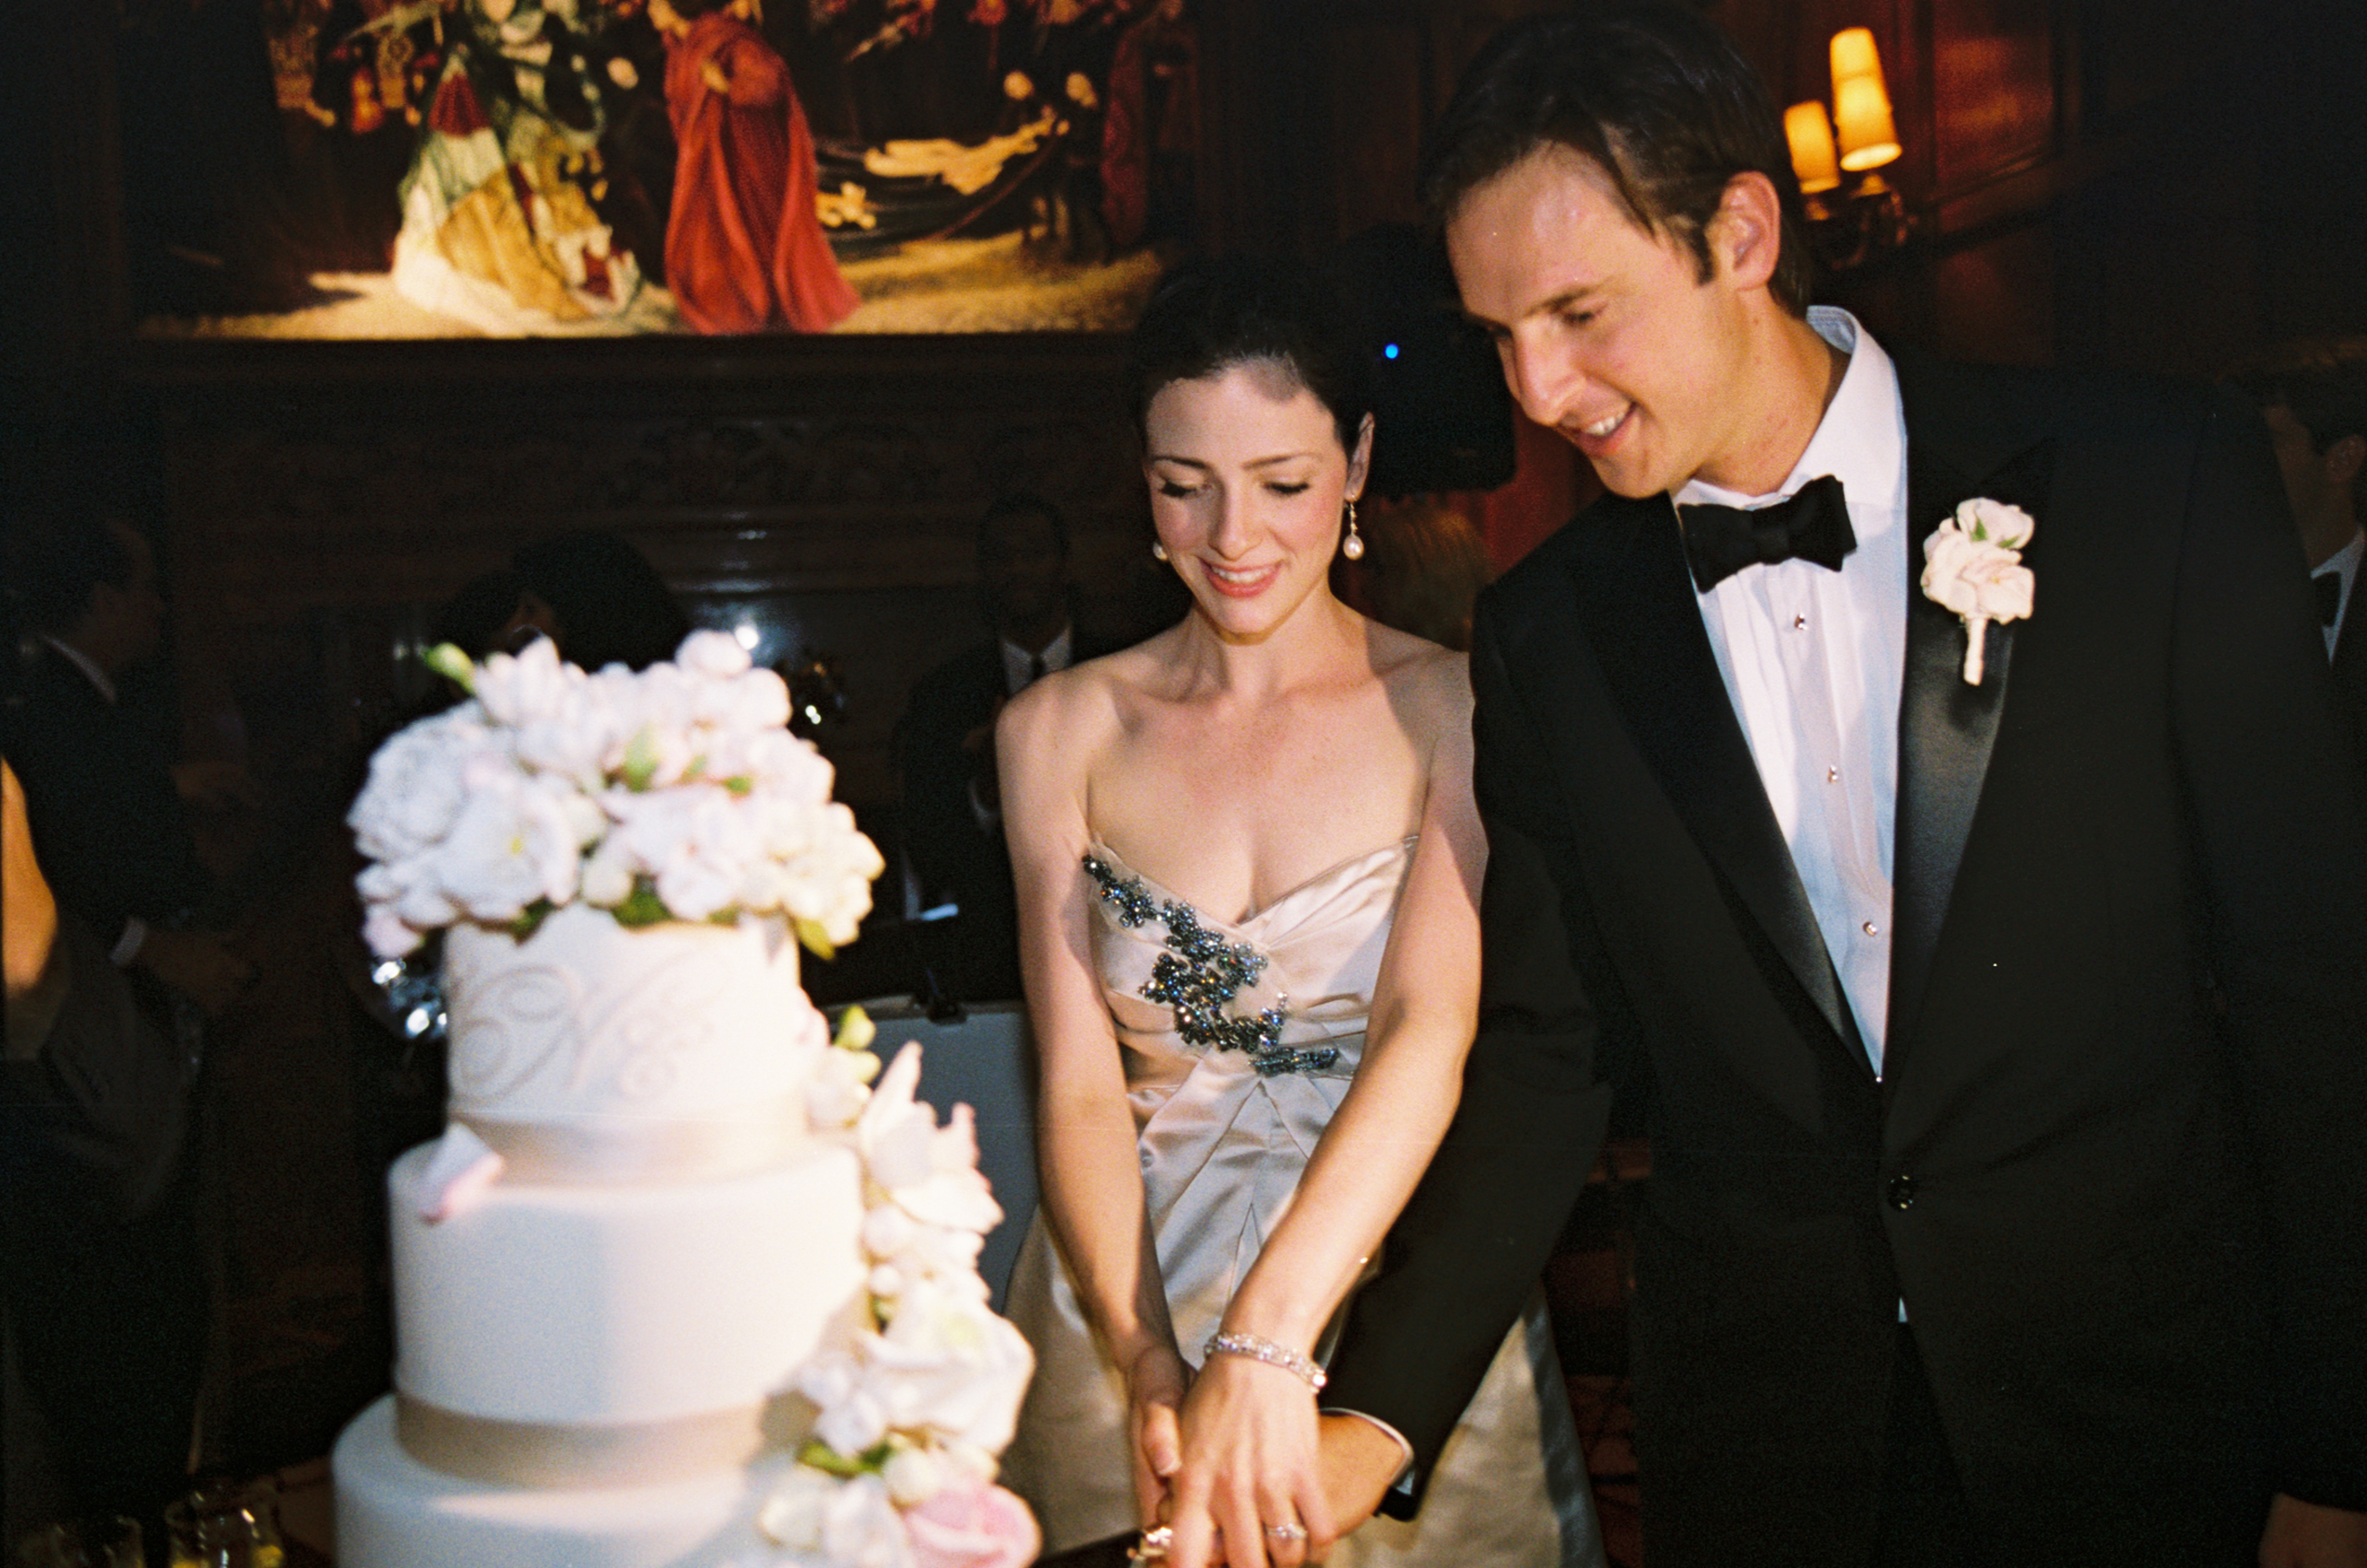 when to cut the wedding cake tradition 10 traditions to not skip for your wedding amanda 27123